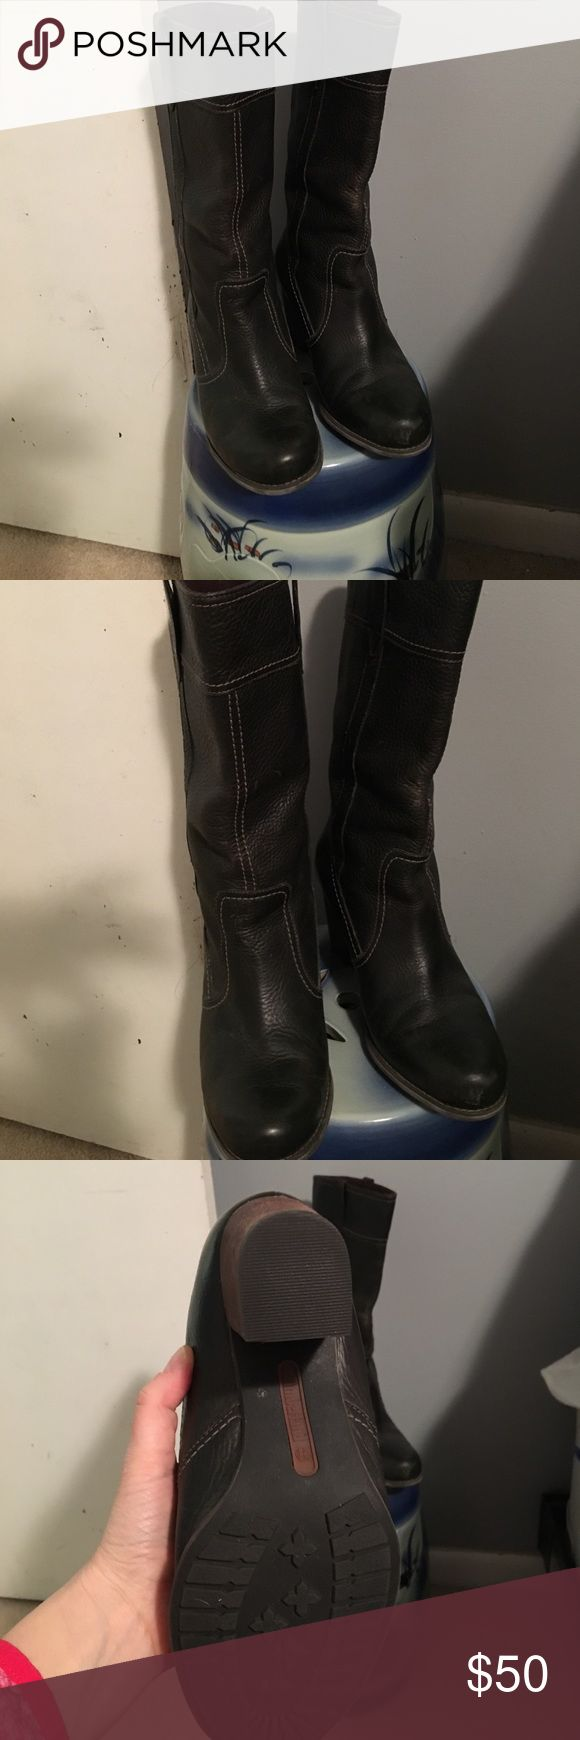 Timberland waterproof boots Olive green Timberland boots, size 10, hardly worn. Leather, lined, and Waterproof. Approx. 3-inch heel. These boots are designed to be warm, waterproof, they are lined with a quilted material. Timberland Shoes Heeled Boots